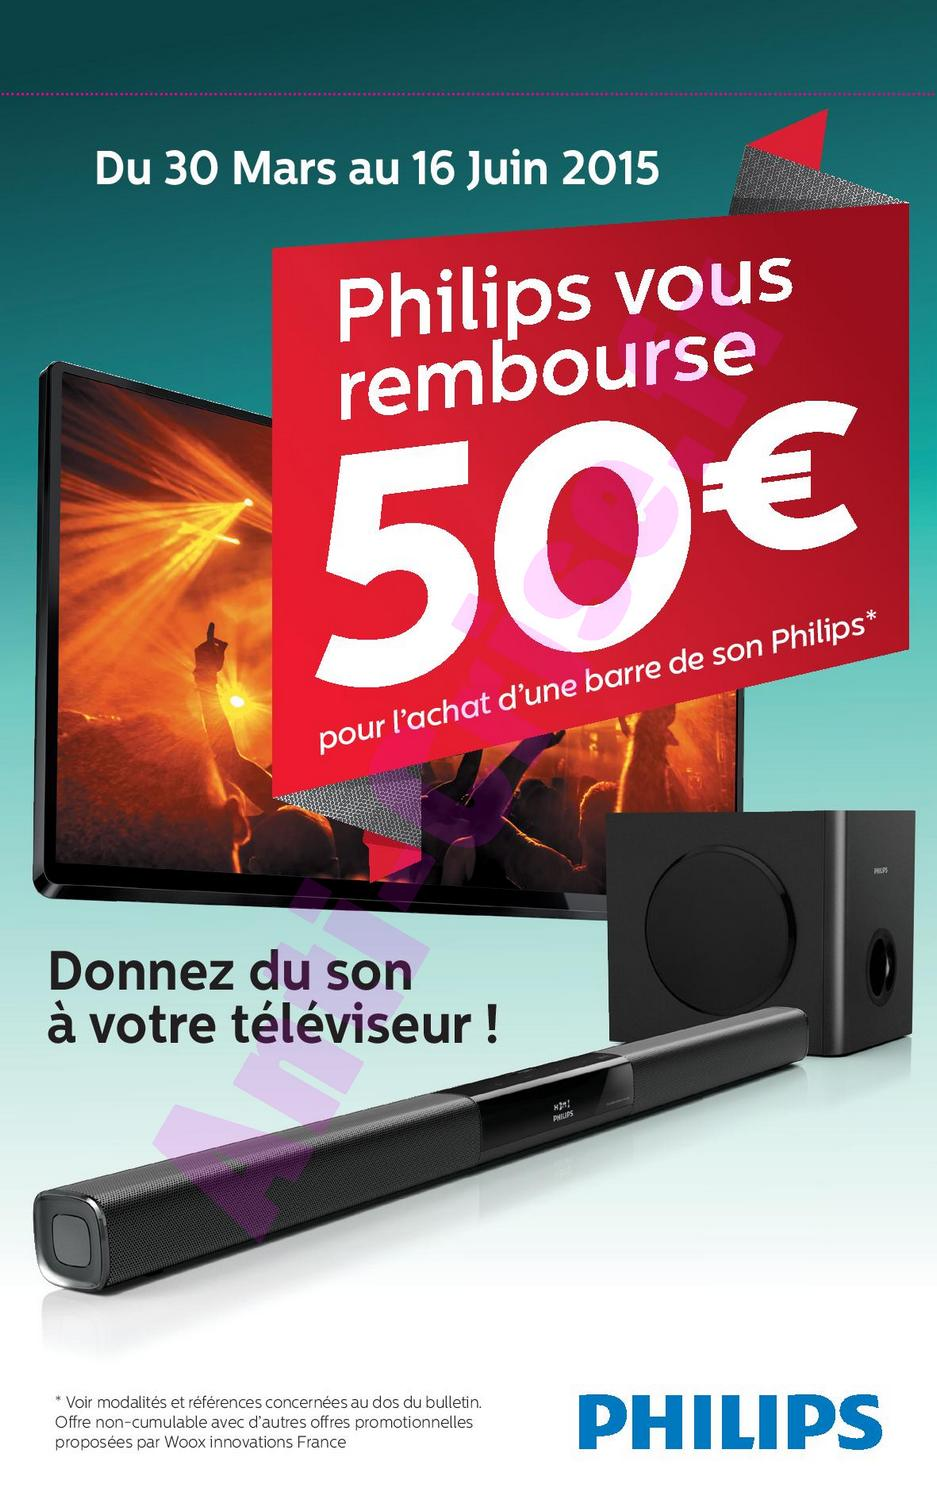 offre de remboursement odr philips 50 sur barre de son. Black Bedroom Furniture Sets. Home Design Ideas